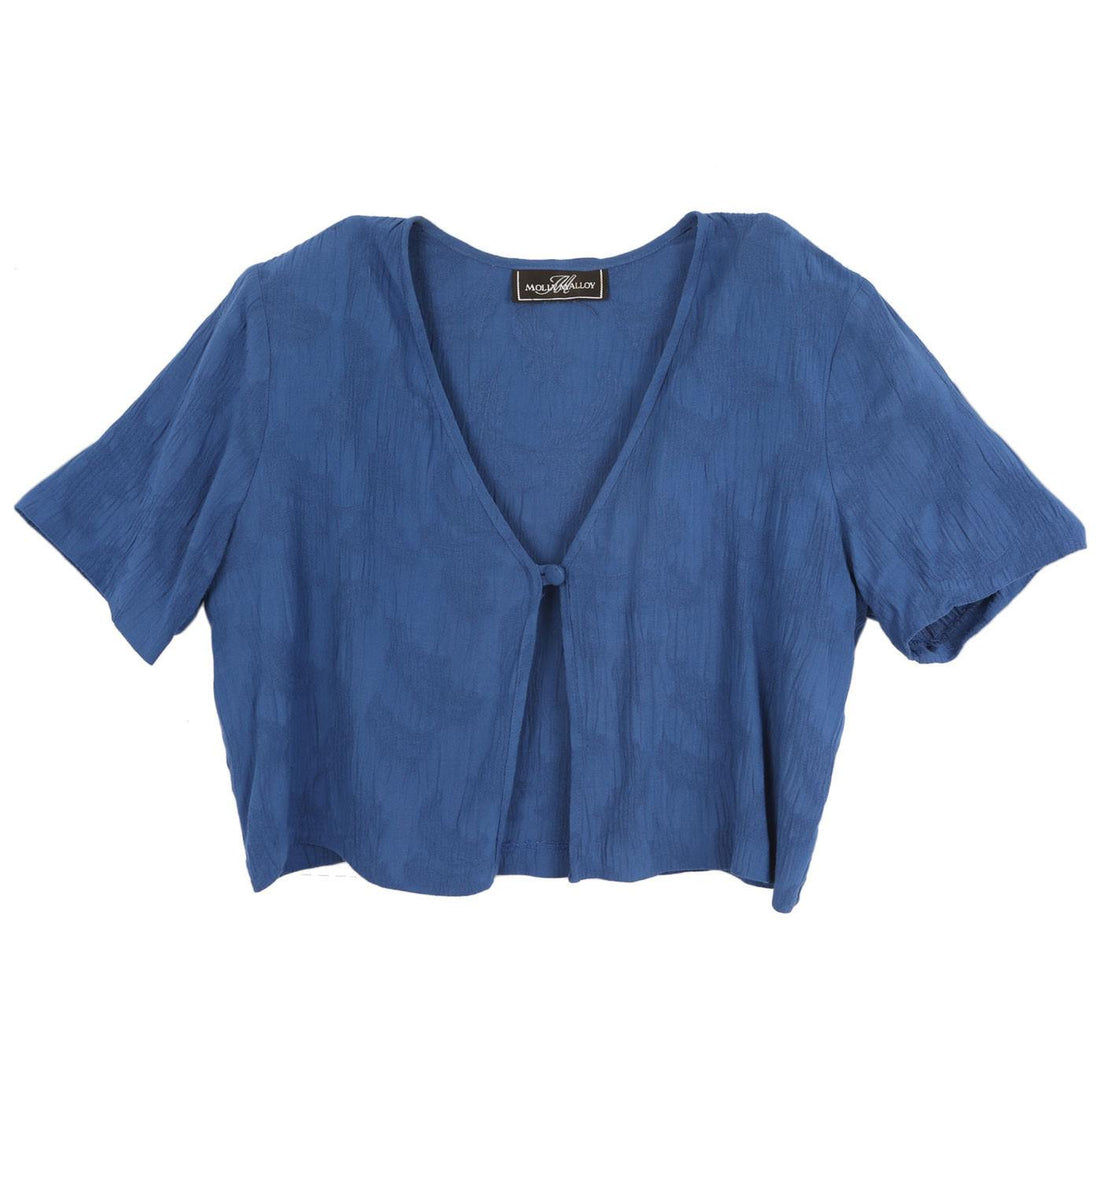 Vintage Blue Crop Top Blouse